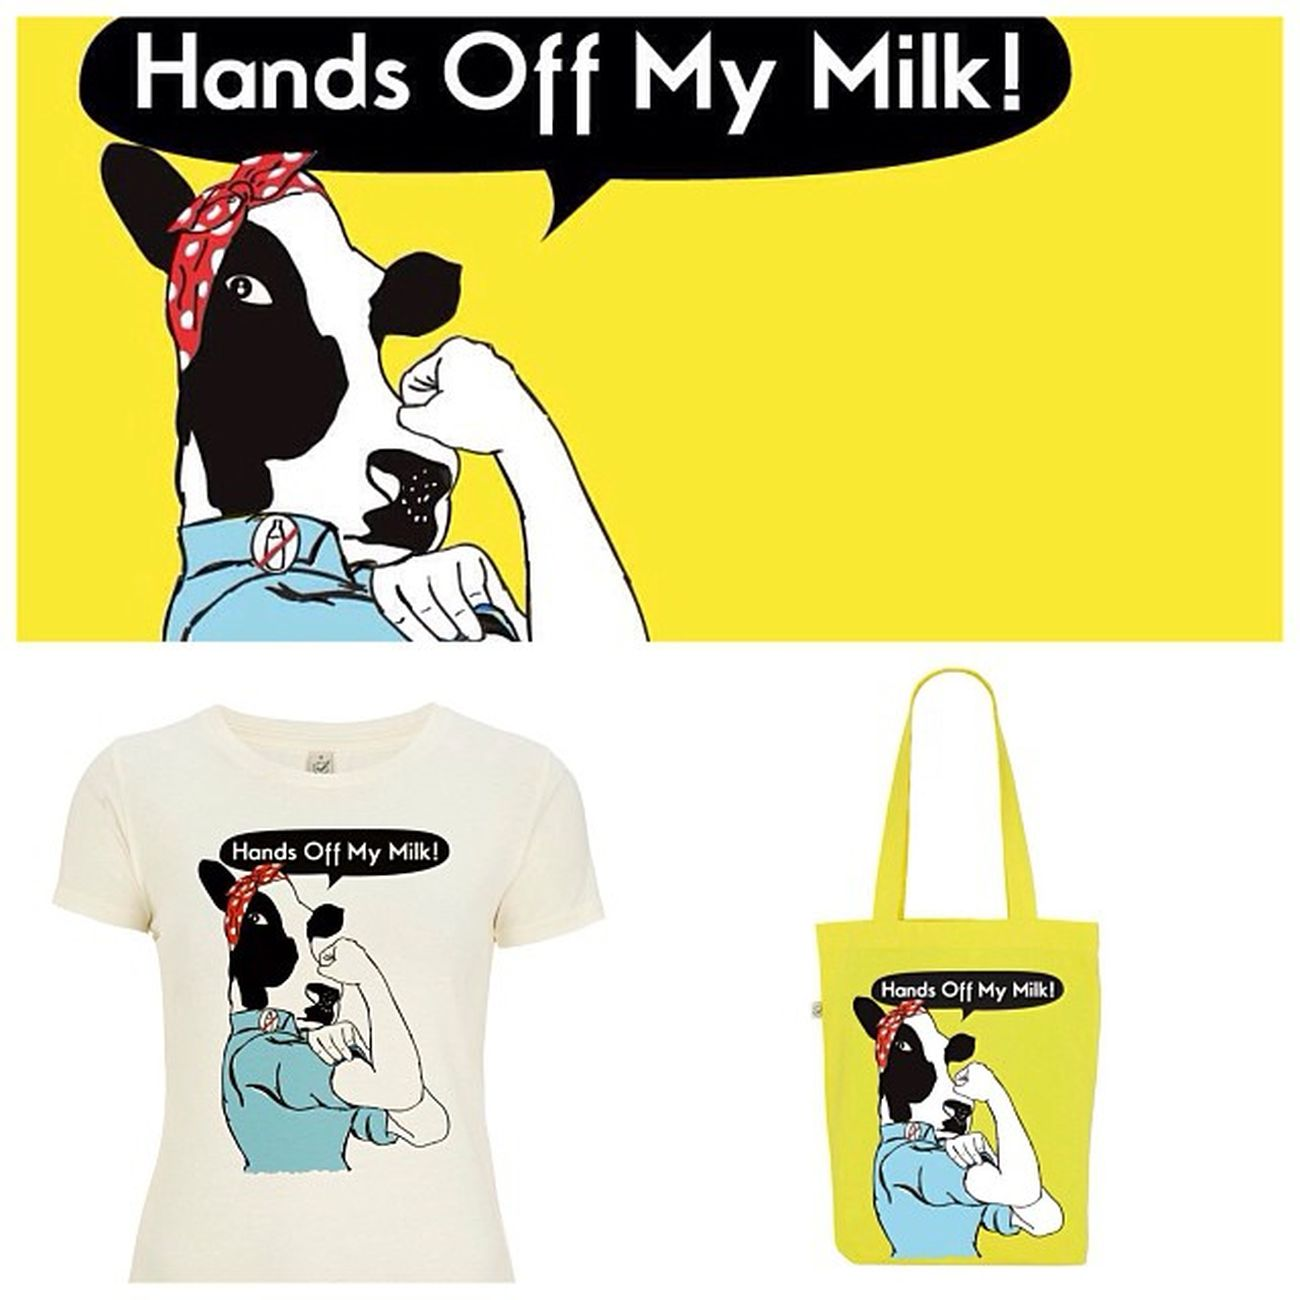 New limited edition tee and totes! Preorder now on www.chiaralascura.it #vegansofig #wecandoit #vegan #govegan #veganshopping #veganfashion #veganshirt #vegantshirt #vegangraphics #ecofashion #fairwear #chiaralascura #vegansofinstagram #instavegan #cowlov Veganshopping Vegangraphics Antispecismo Posterart Vegan Fairwear GoVegan Veganfashion Veganism Ecofashion Instavegan Vegansofig Screenprinting Animalliberation Feminist Cowlove Wecandoit Milkiscruel Chiaralascura Vegansofinstagram Veganshirt Vegantshirt